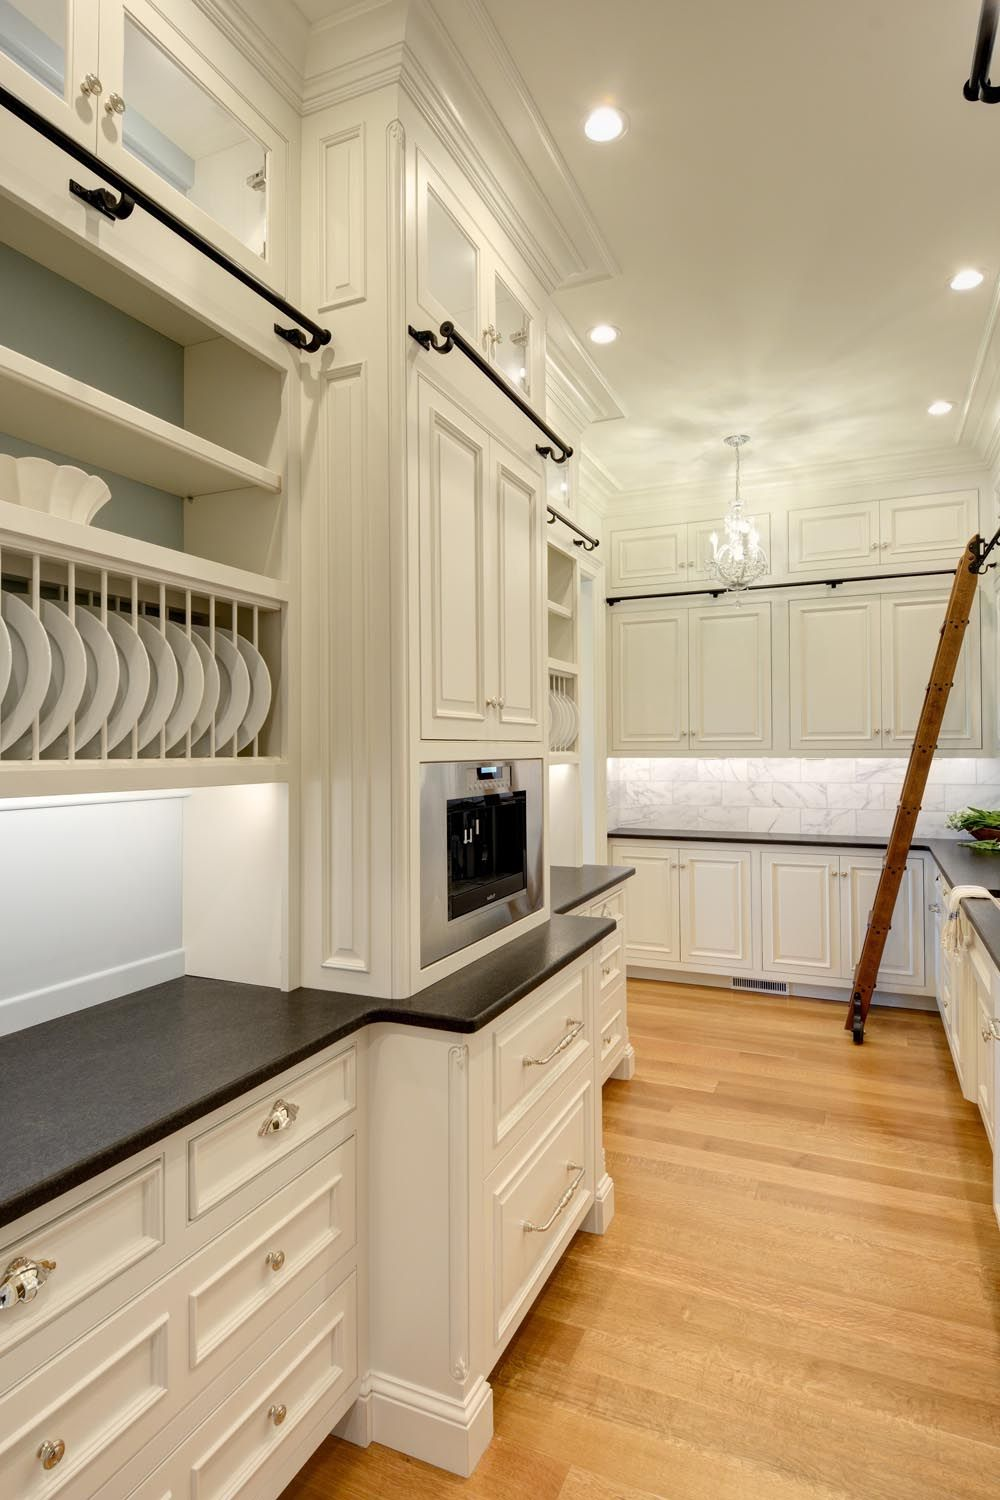 Monticello Inspired Home In Somers Ct Built By Laplante Construction The Ten Foot High Ceilings Kitchen Cabinet Styles Custom Kitchen Cabinets Kitchen Design